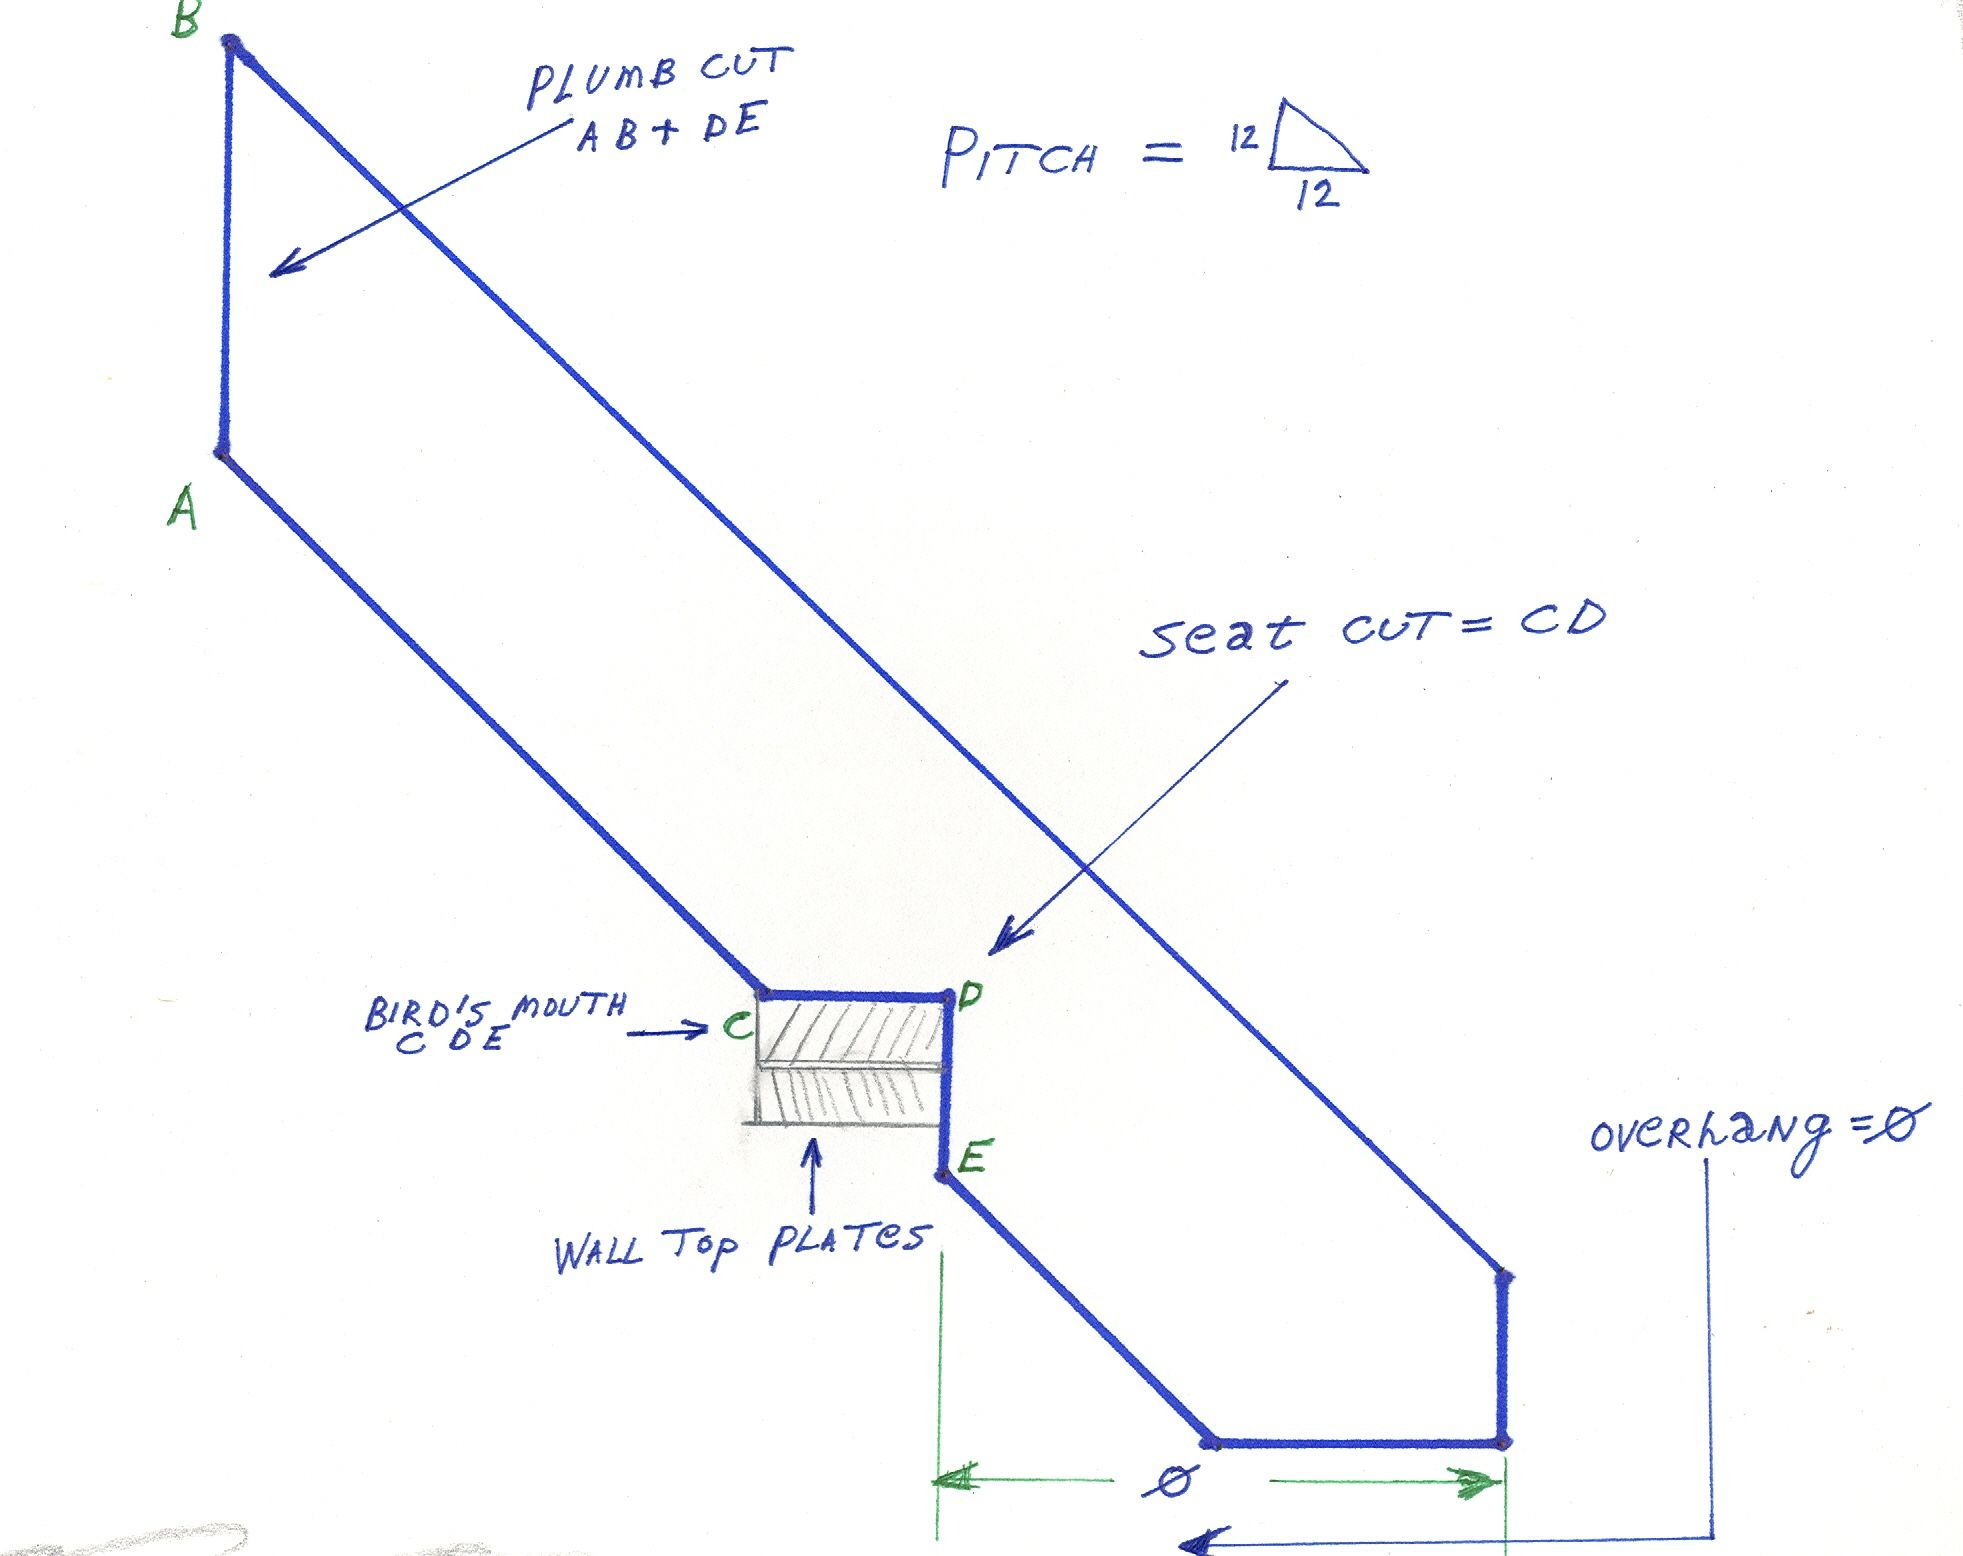 Common Rafter 12 on 12 pitch Roof design, Roof, Rafter